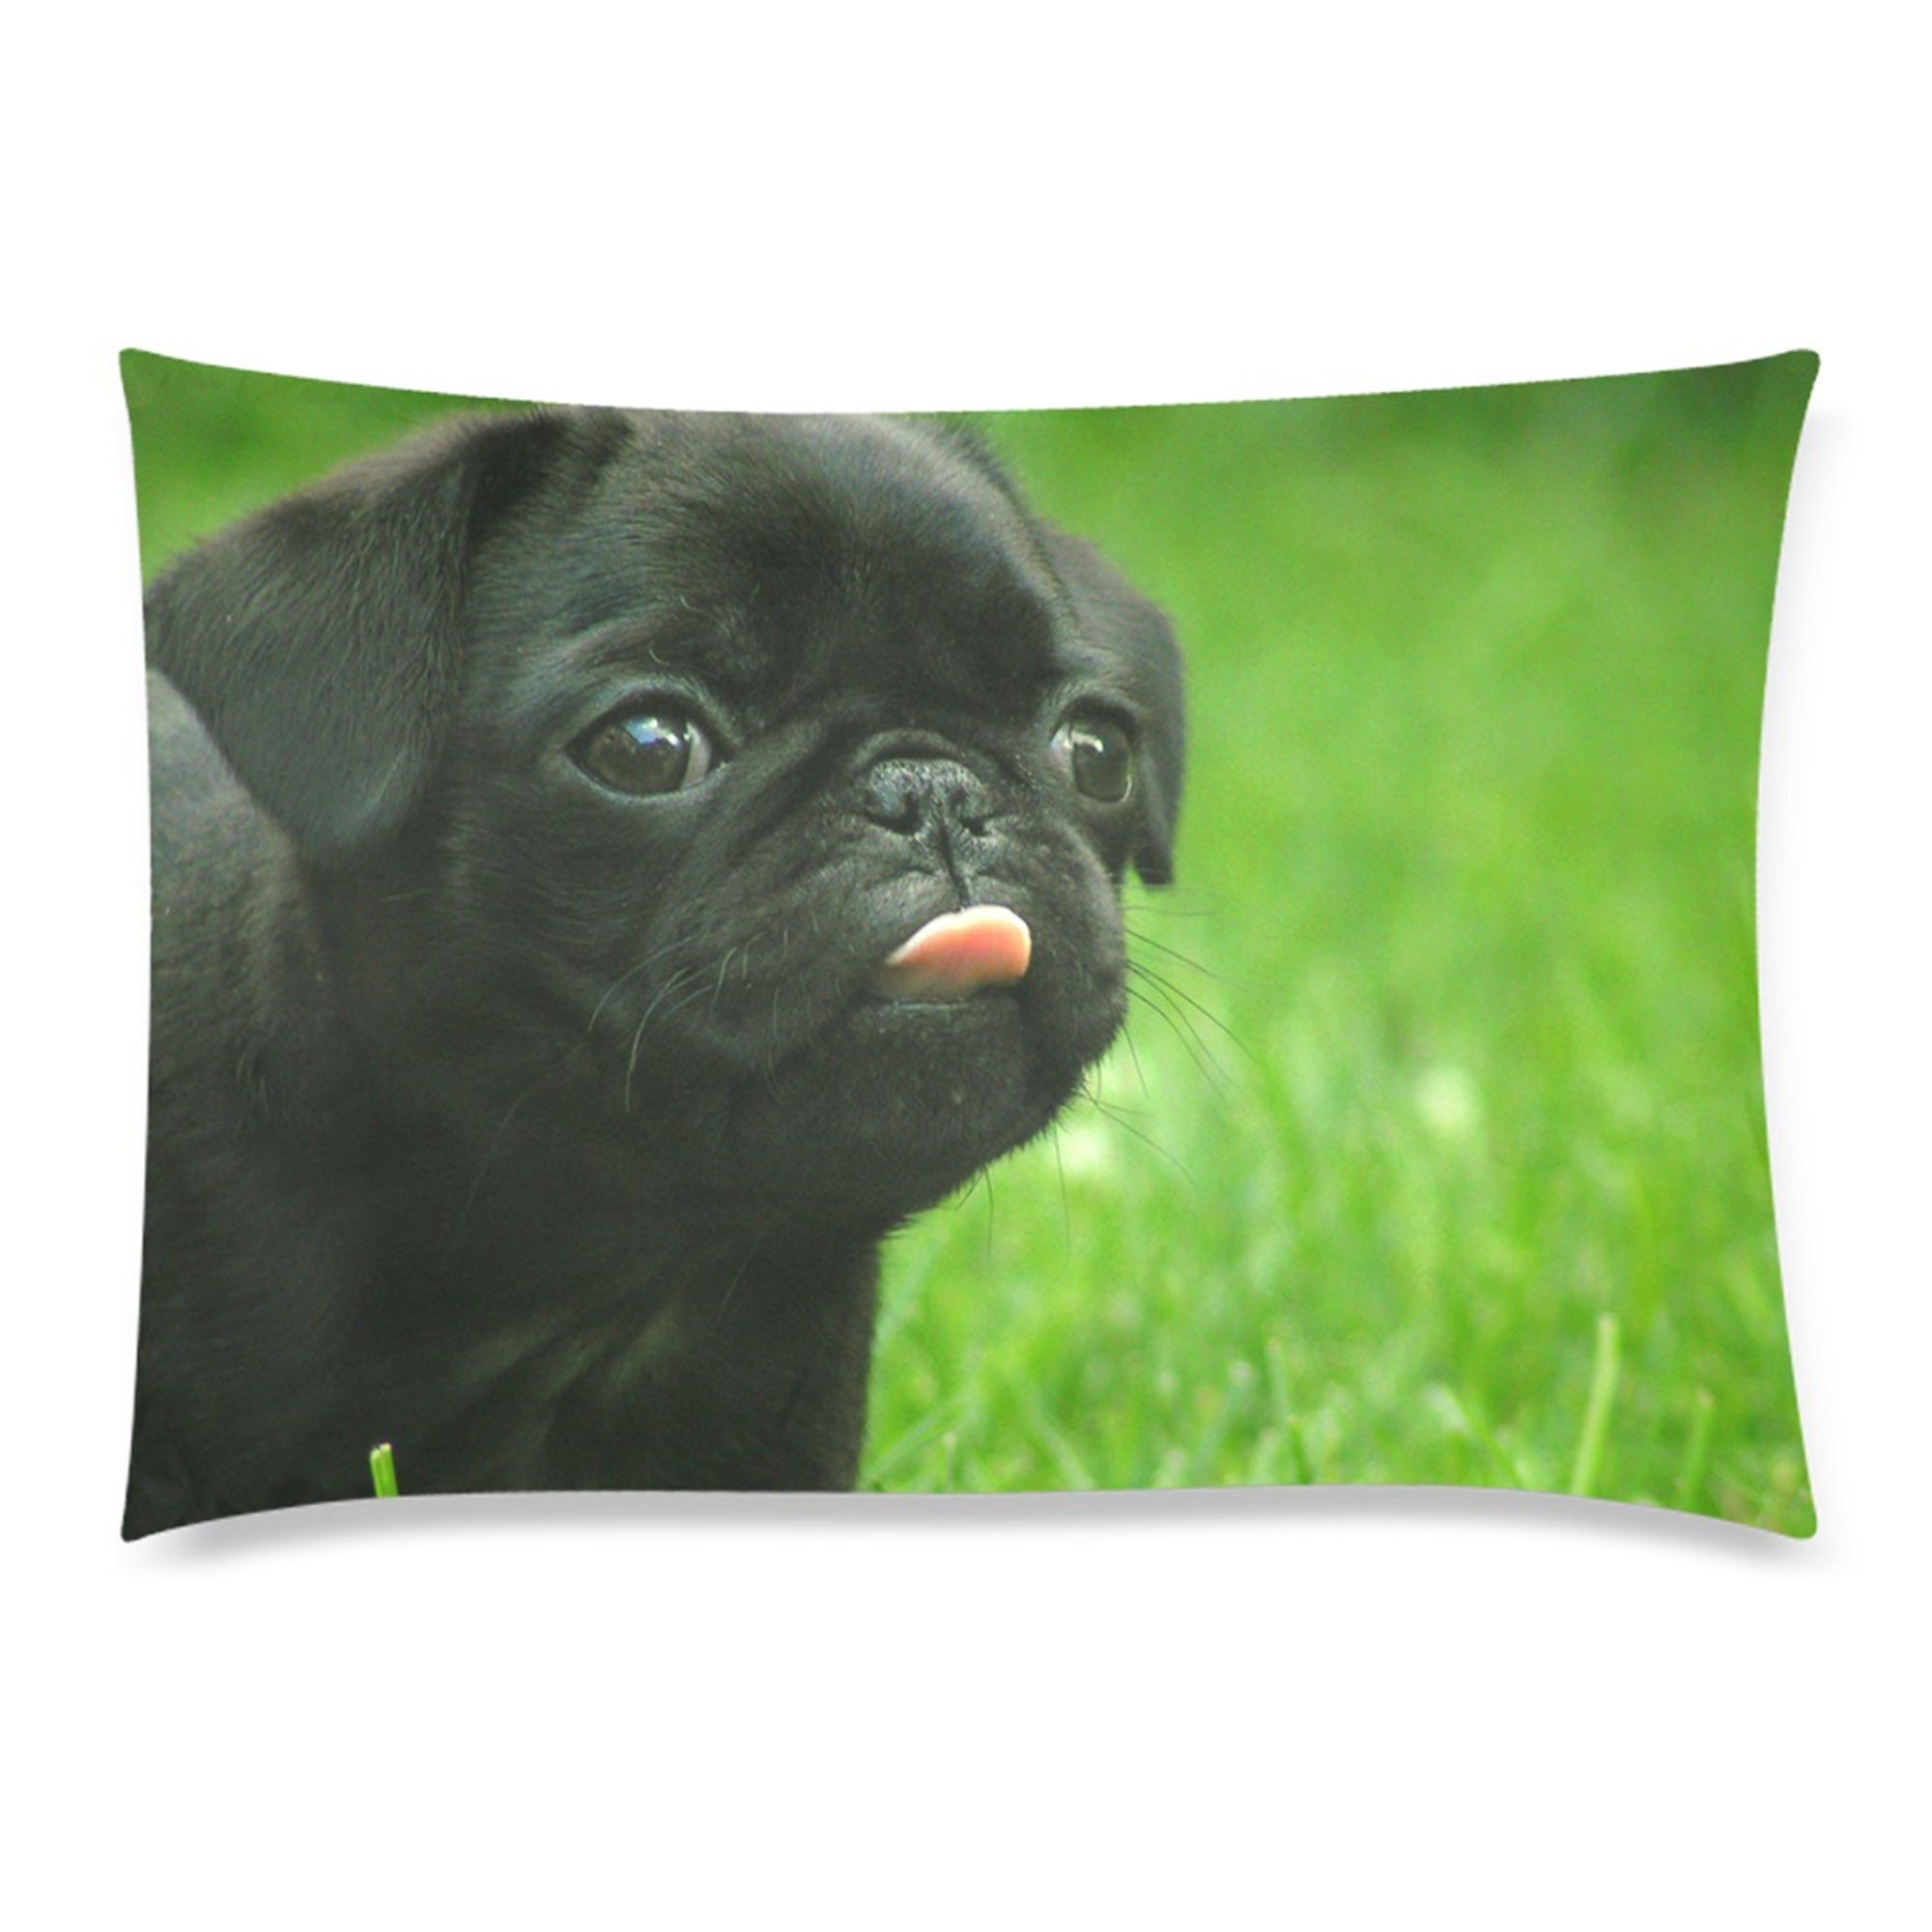 InterestPrint Custom Black Funny Pug Dog Rectangle Pillowcase Standard Size 20''x30'' Twin Sides, Lovely Animal Puppy Dog Pillow Case Cover Decorative by InterestPrint